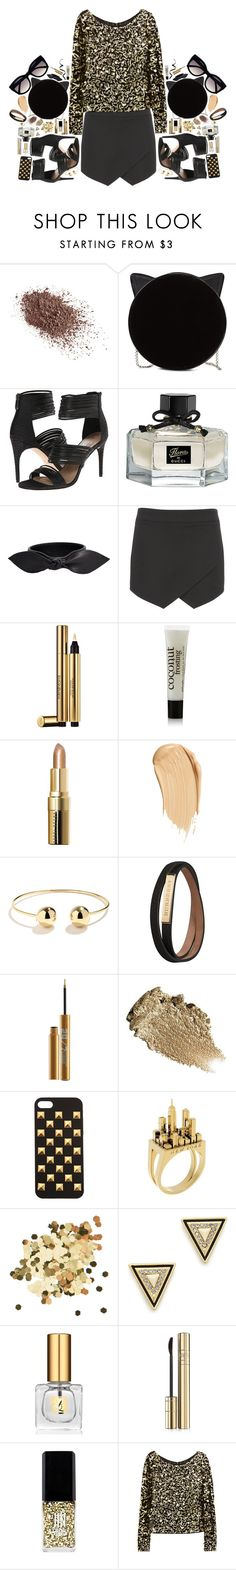 """Sin título #367"" by lilymania92 ❤ liked on Polyvore featuring mode, Napoleon Perdis, Charlotte Olympia, BCBGMAXAZRIA, Gucci, Yves Saint Laurent, maurices, philosophy, Bobbi Brown Cosmetics et H&M"